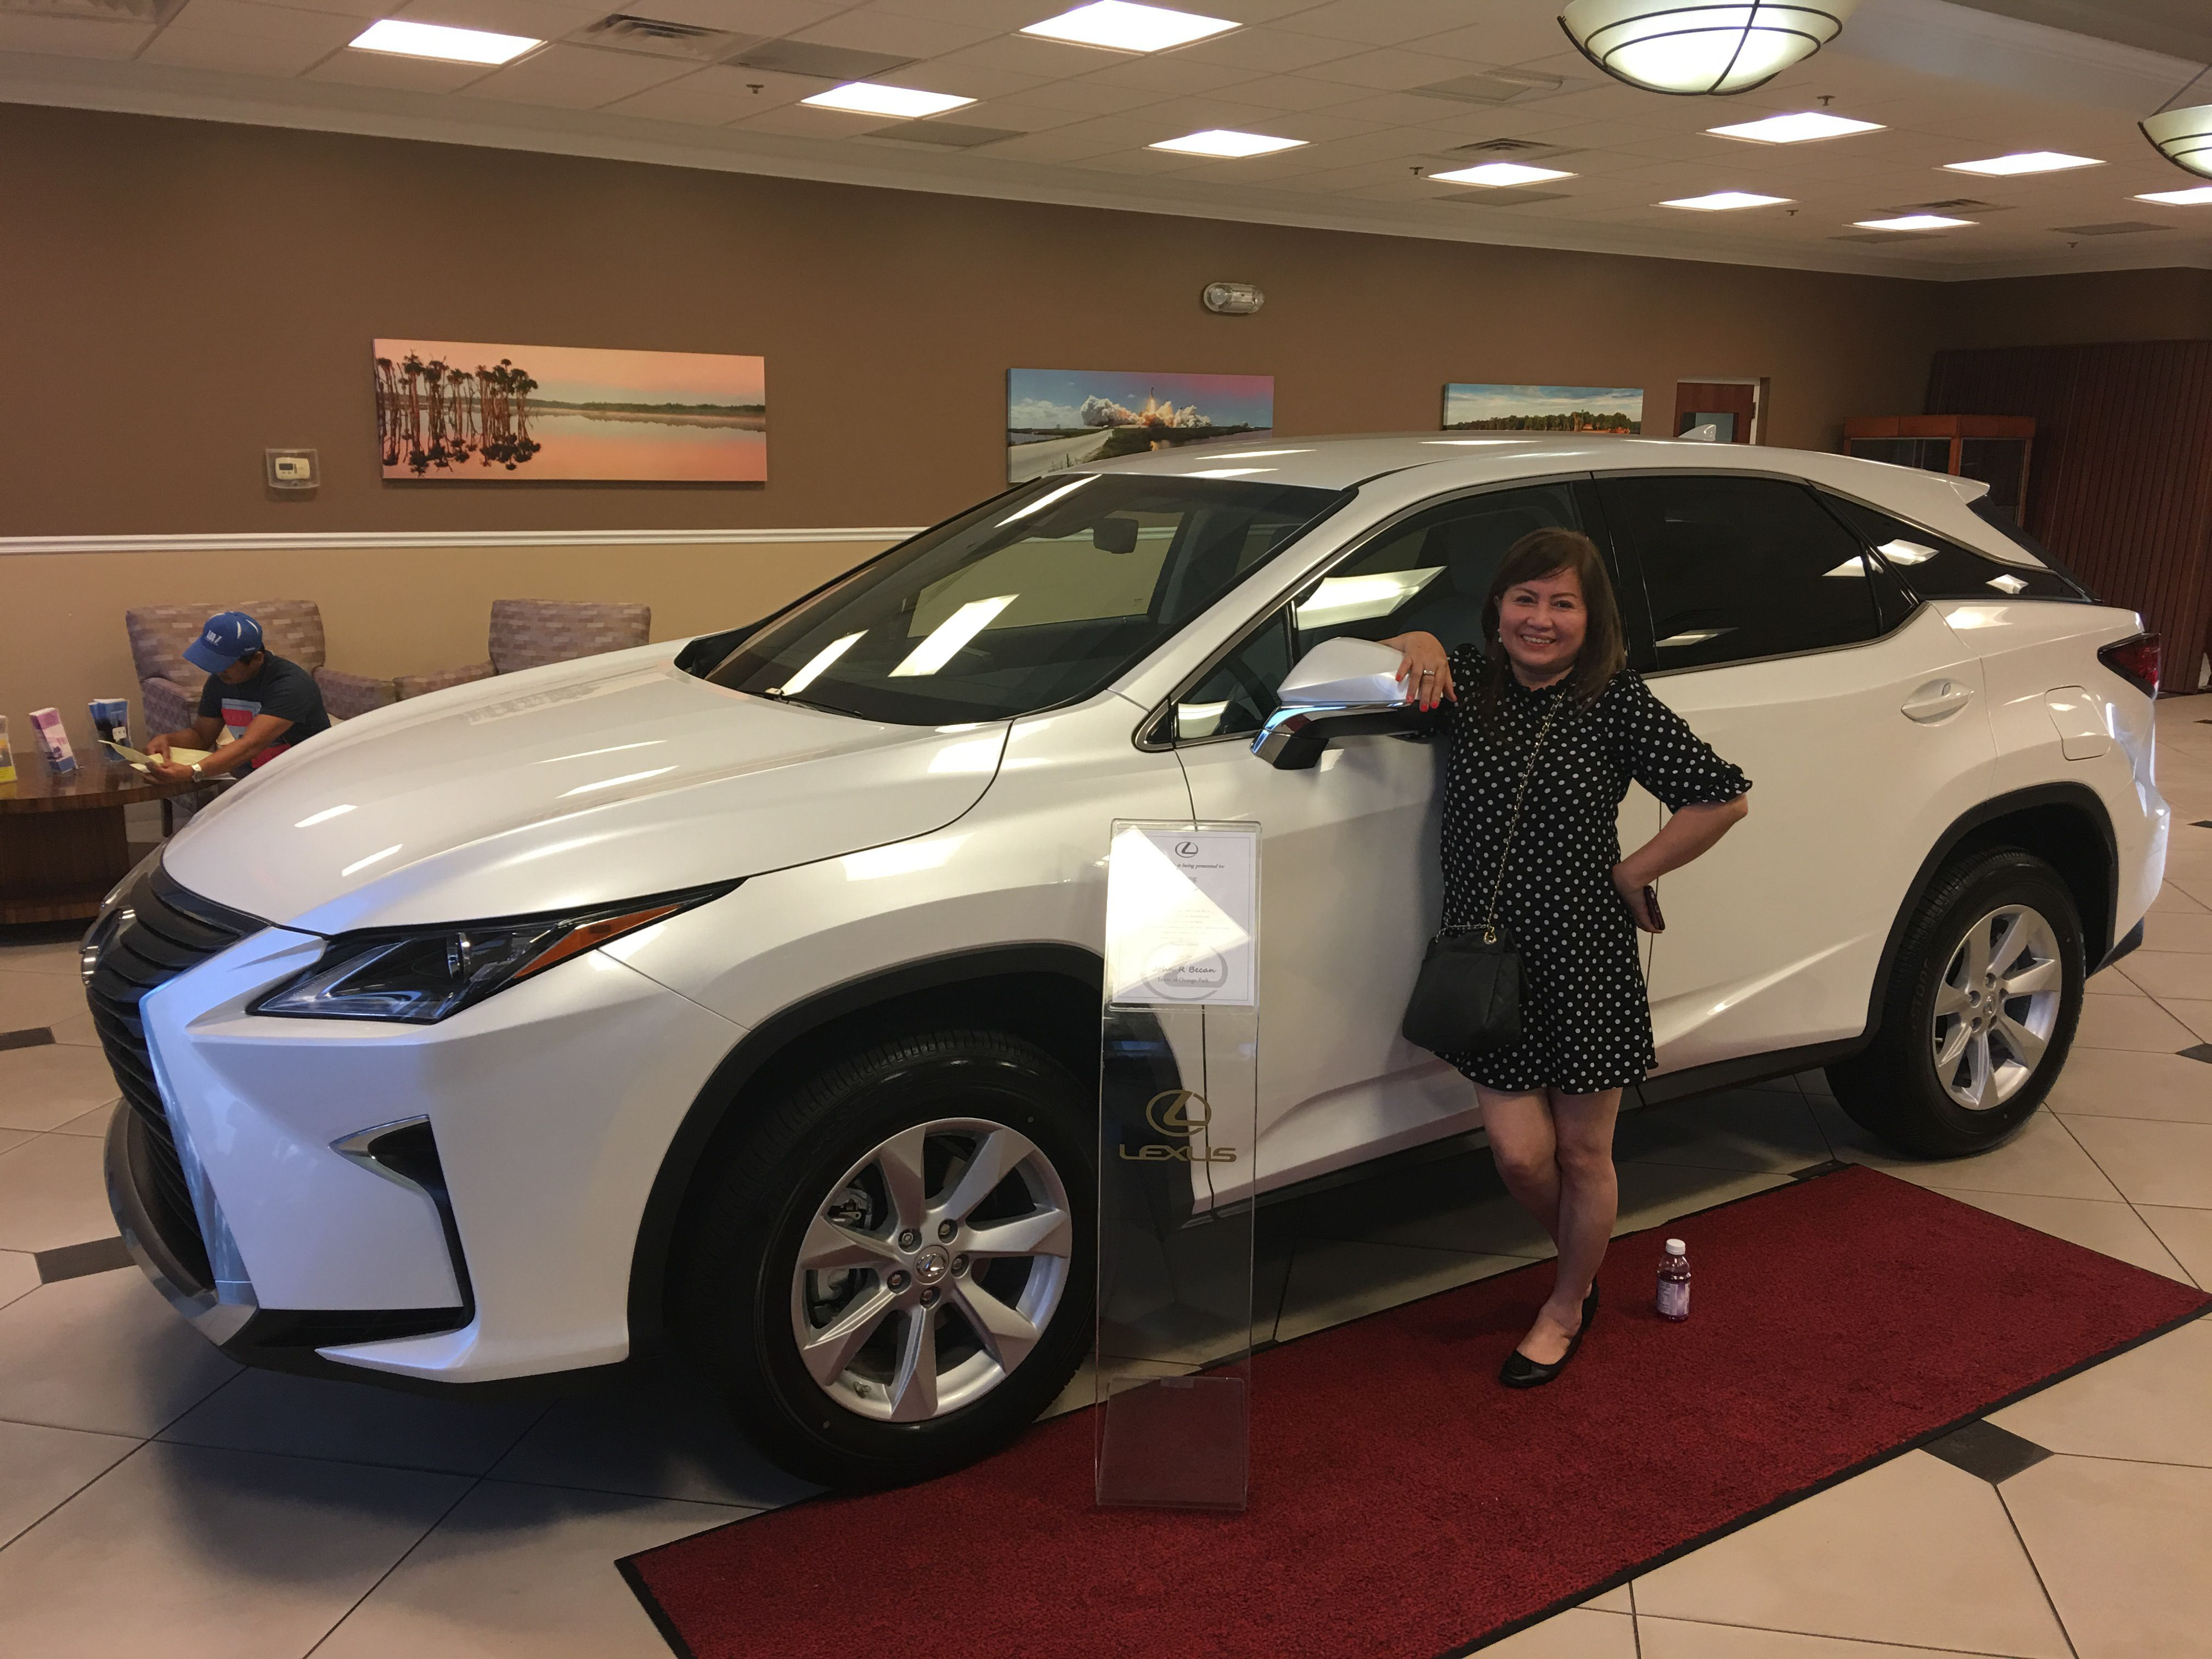 Congratulations To Holly N On The Purchase Of Her 2017 Lexus Rx350 From Our Team Member John At Lexus Of Orange Park Thanks Lexus Orange Park Lexus Dealer